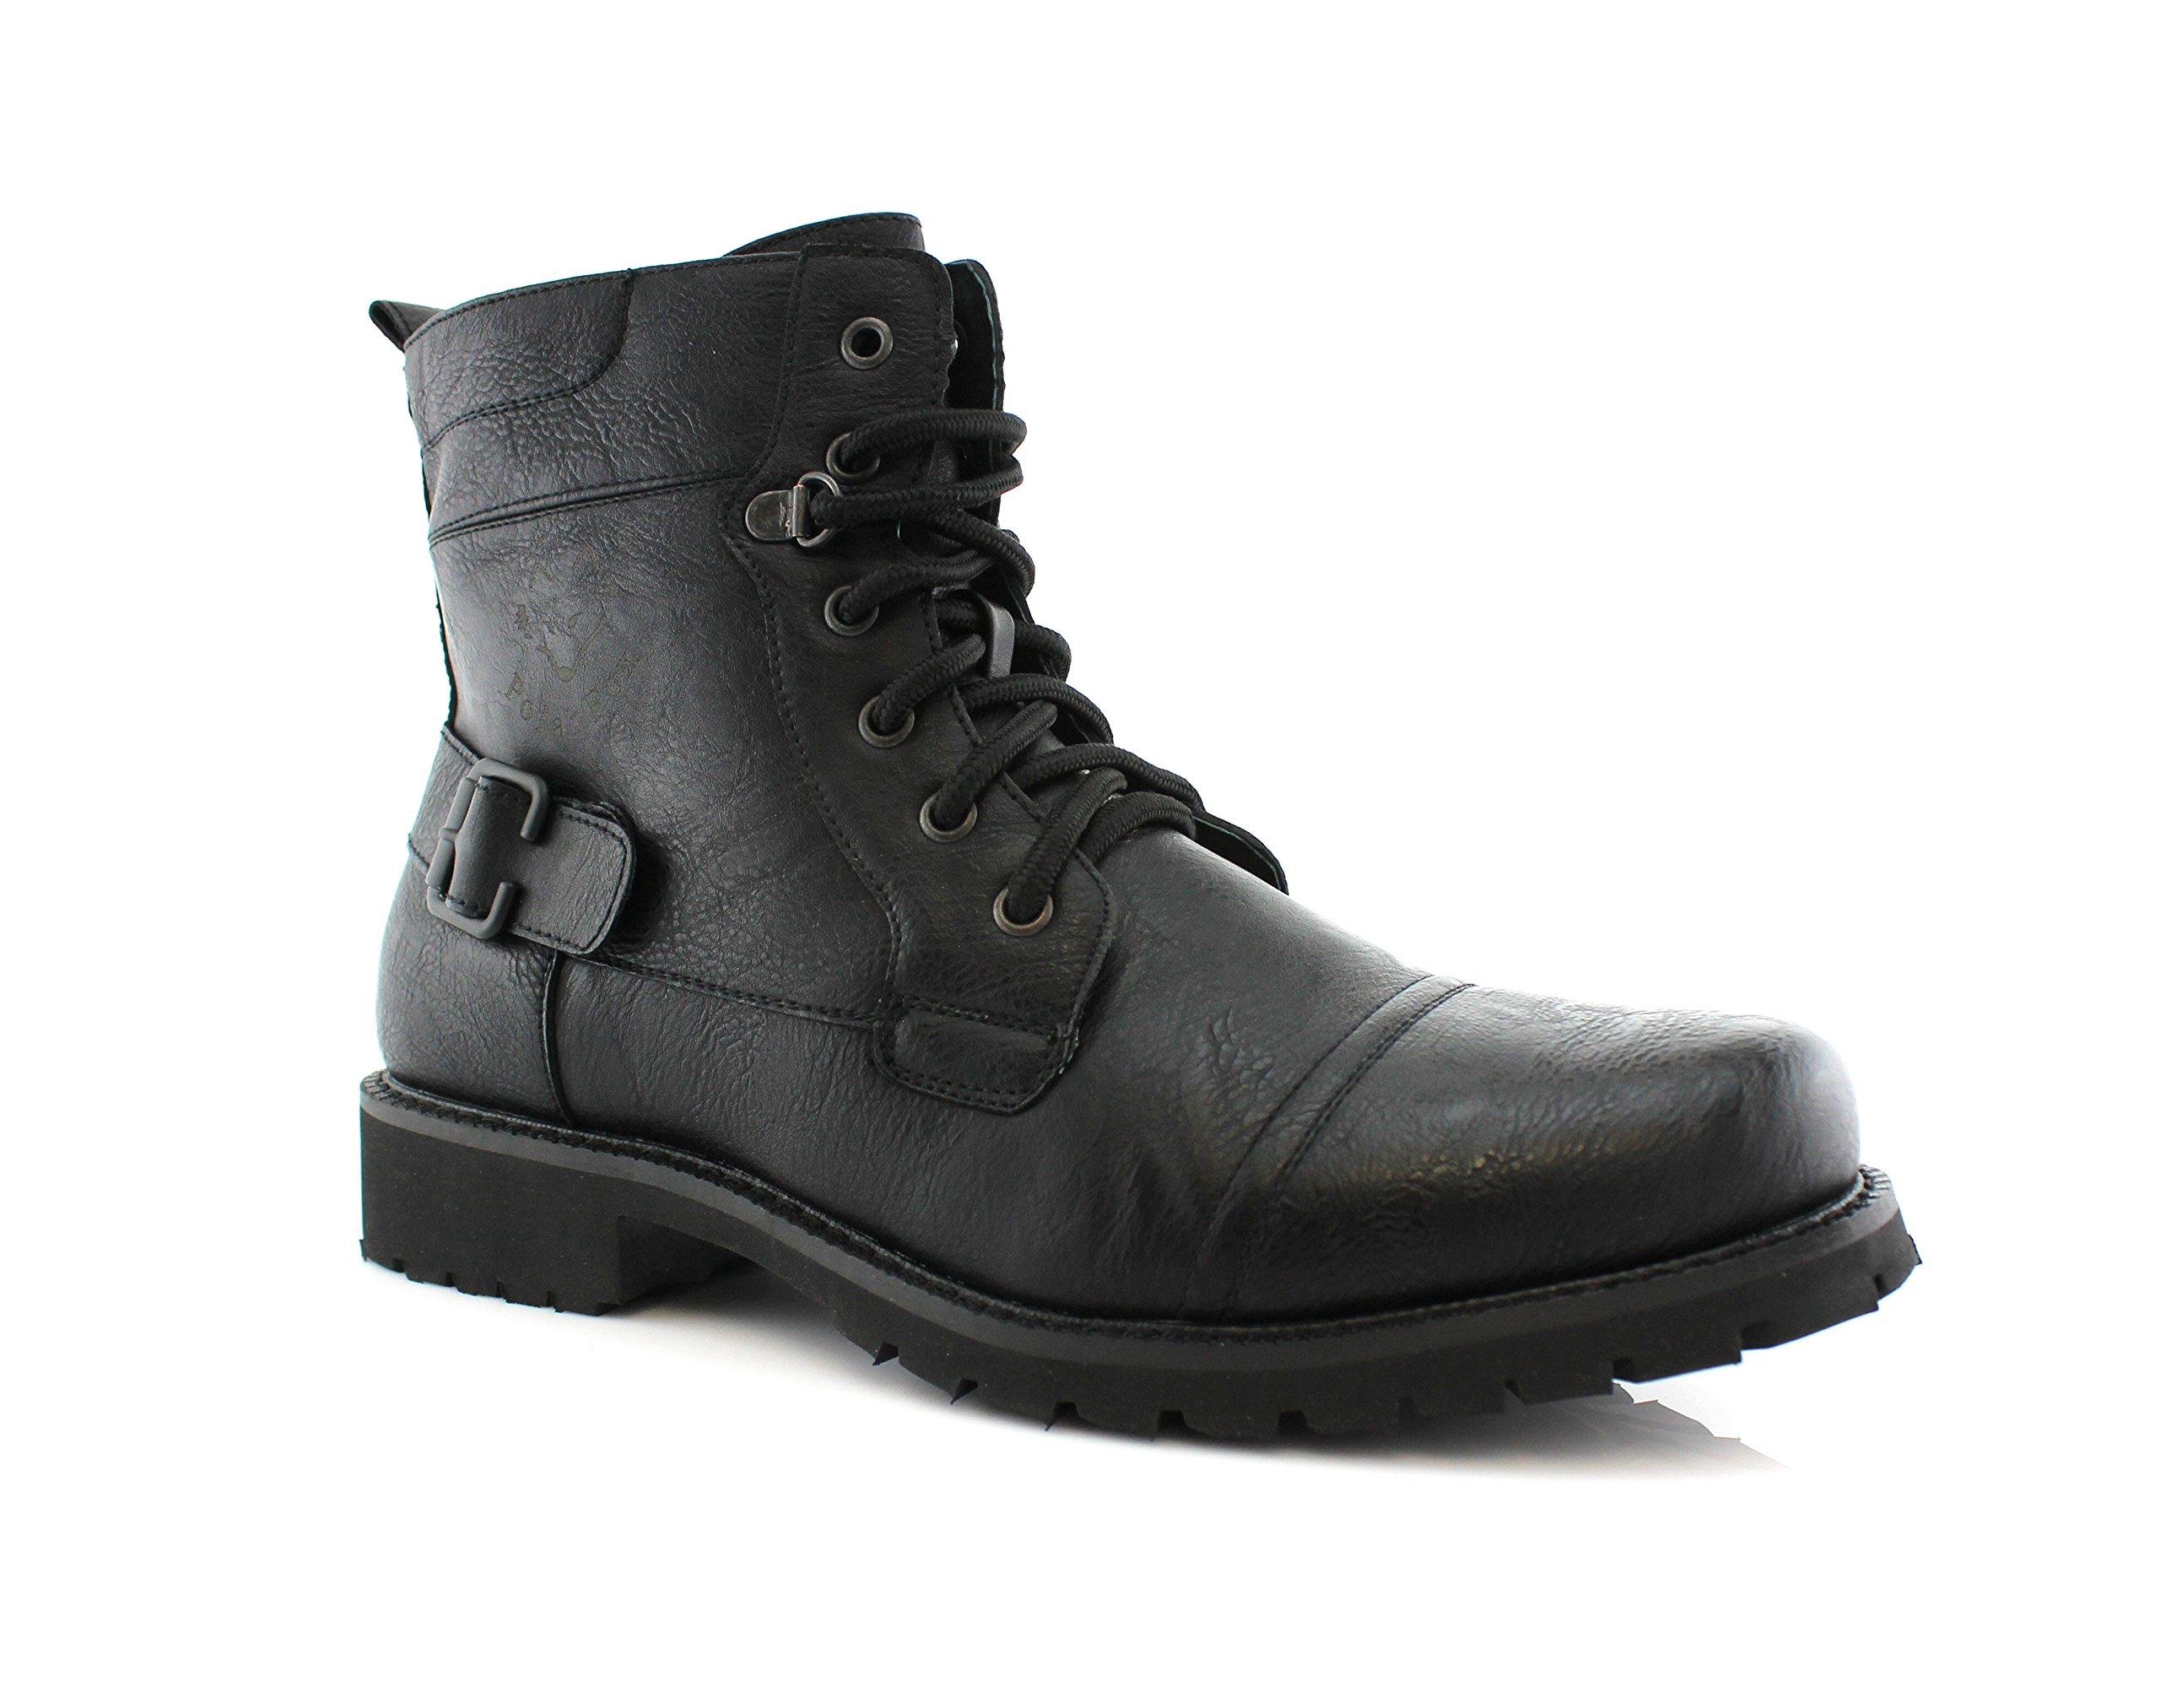 Polar Fox Fabian MPX808006 Mens Dress Work Motorcycle Combat Boots - Black, Size 12 by Polar Fox